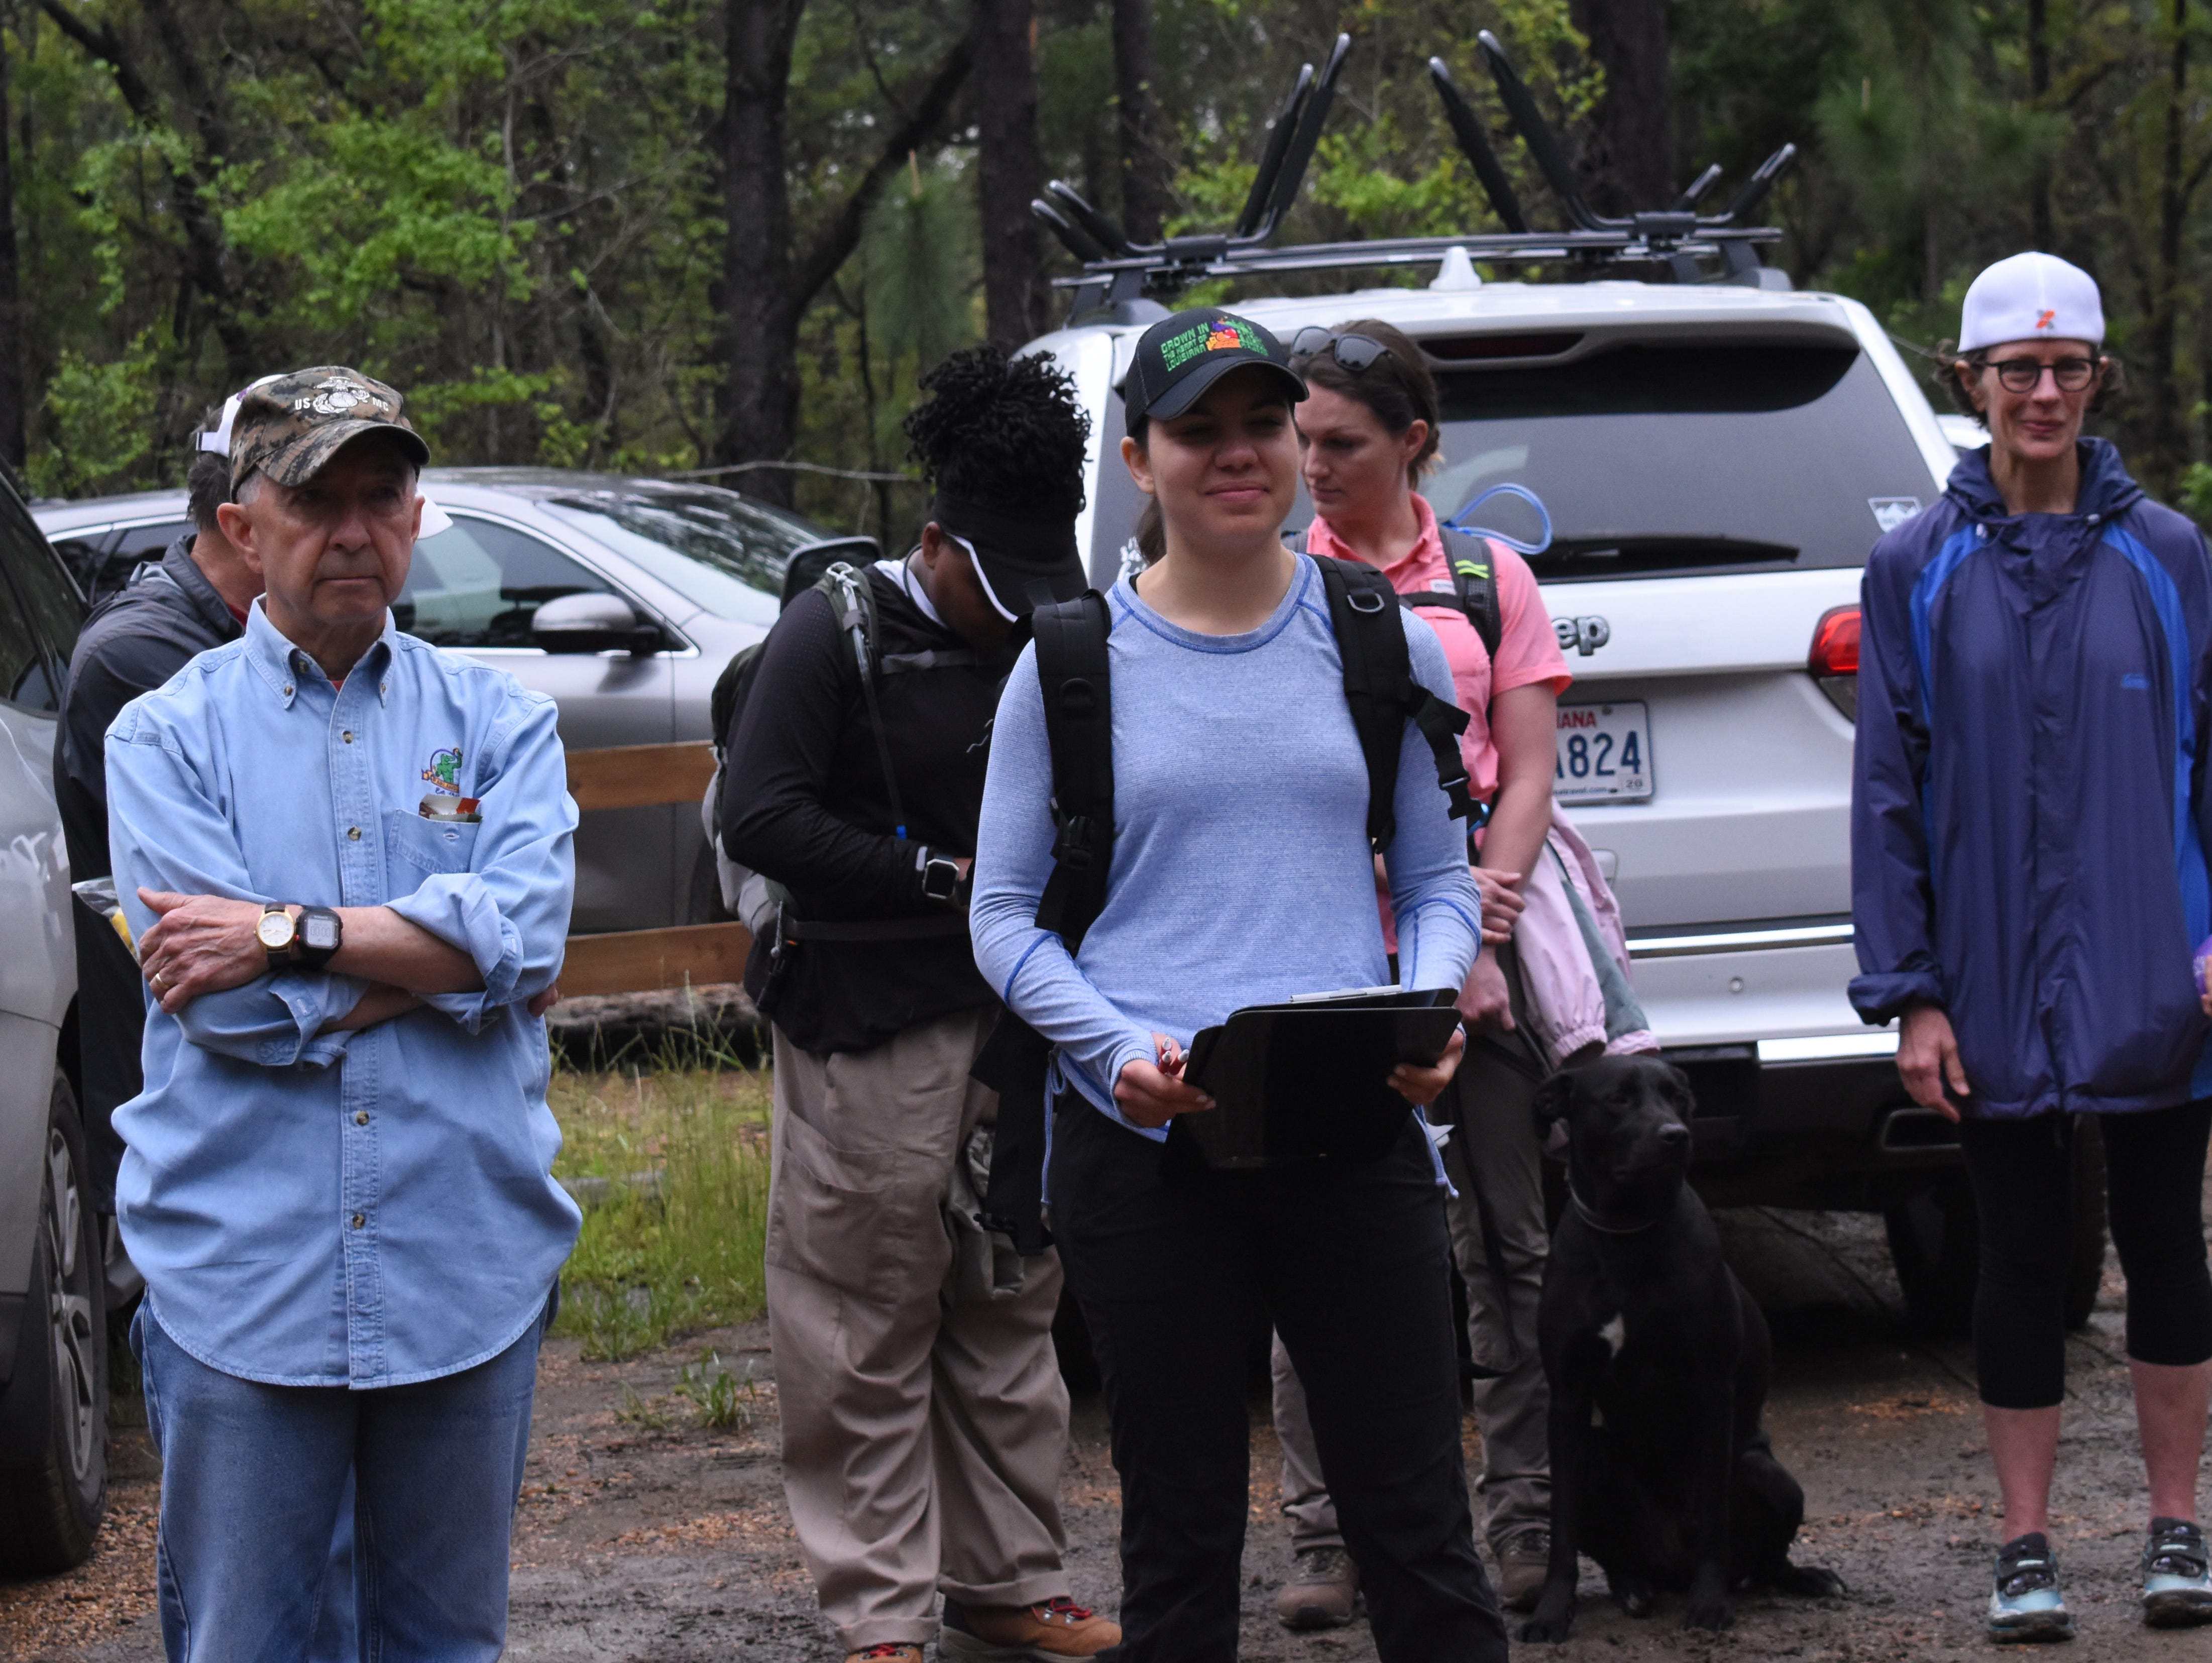 The Wild Azalea Trail (WAT) Blitz was held Saturday, April 13, 2019 with hikers from Central Louisiana, Baton Rouge, Monroe and Lafayette hiking either short, medium or long segments of the trail beginning at the Evangeline Camp WAT trailehead located on Messina Road.